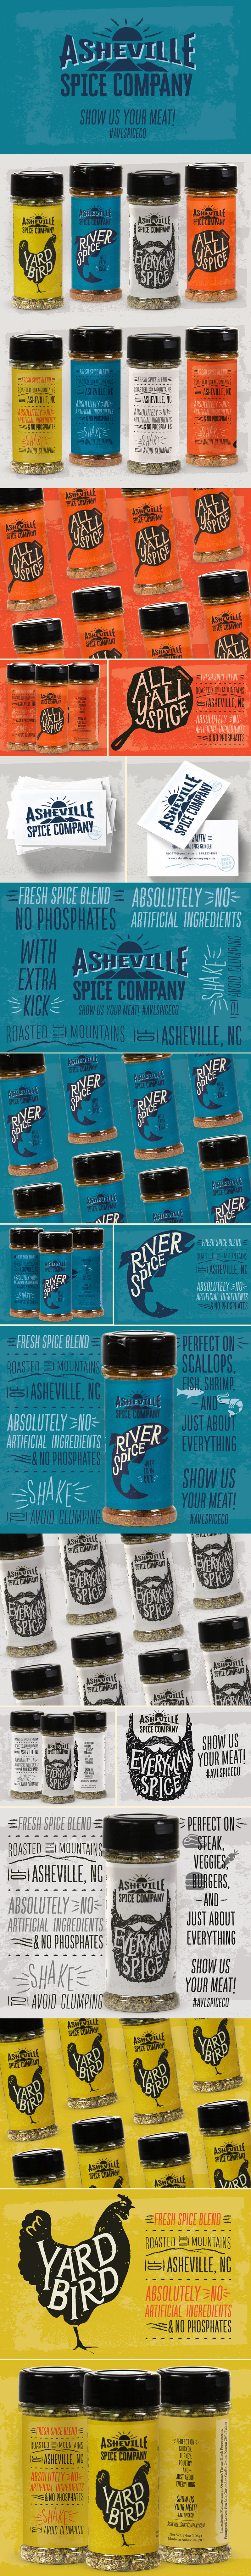 Asheville Spice Company branding and packaging design by Riddle Design Co.